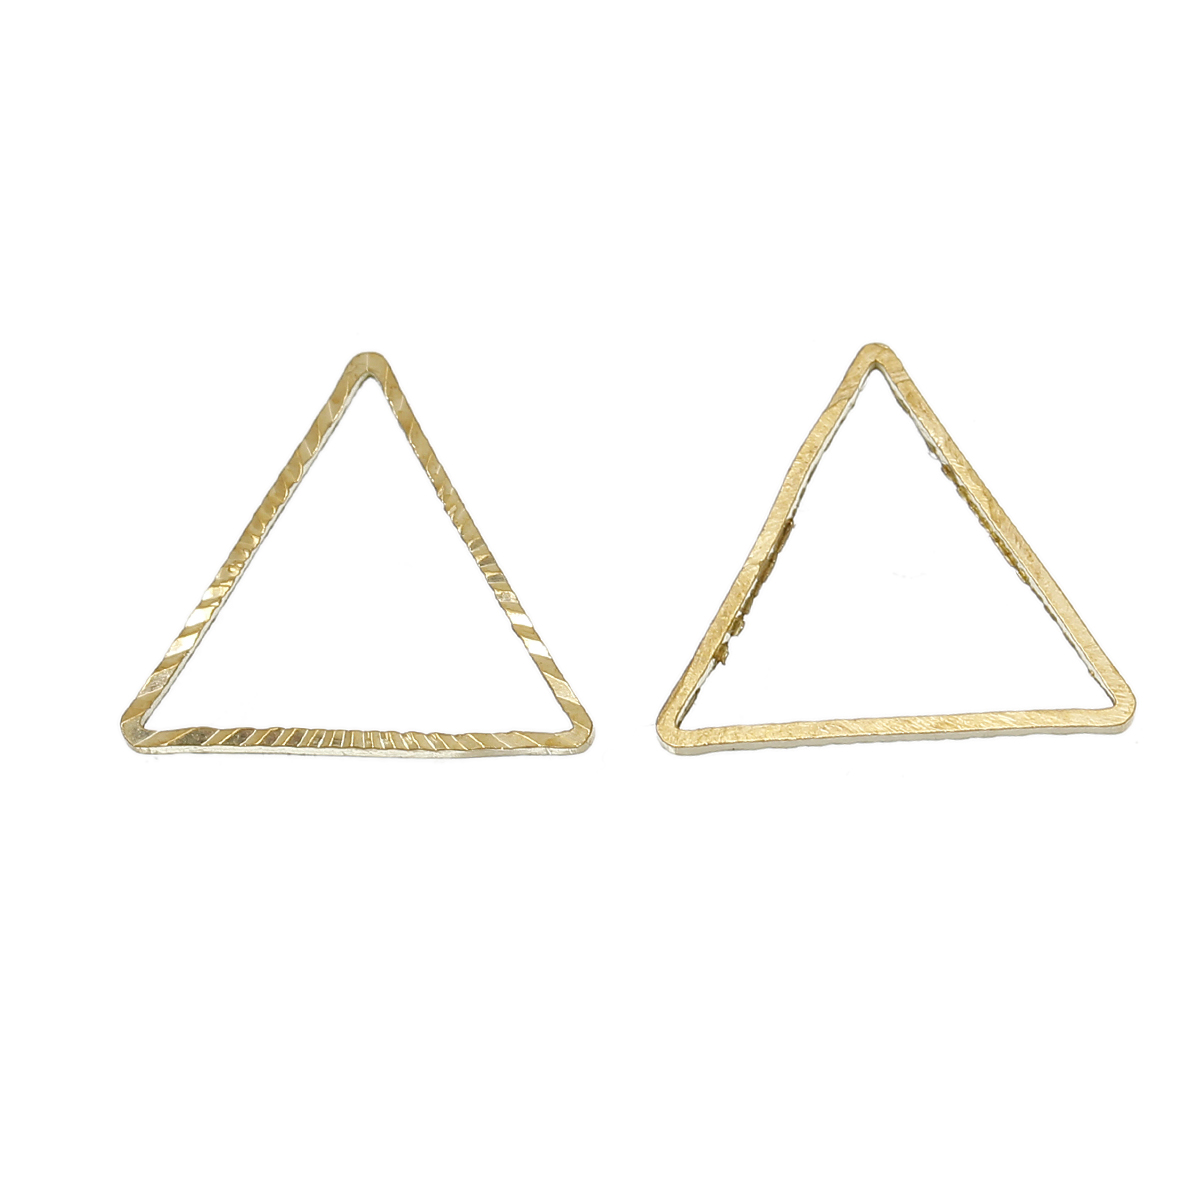 "Brass Beads Frames Triangle Brass Tone Blank 15mm( 5/8"") x 13mm( 4/8""), 100 PCs 2015 new(China (Mainland))"